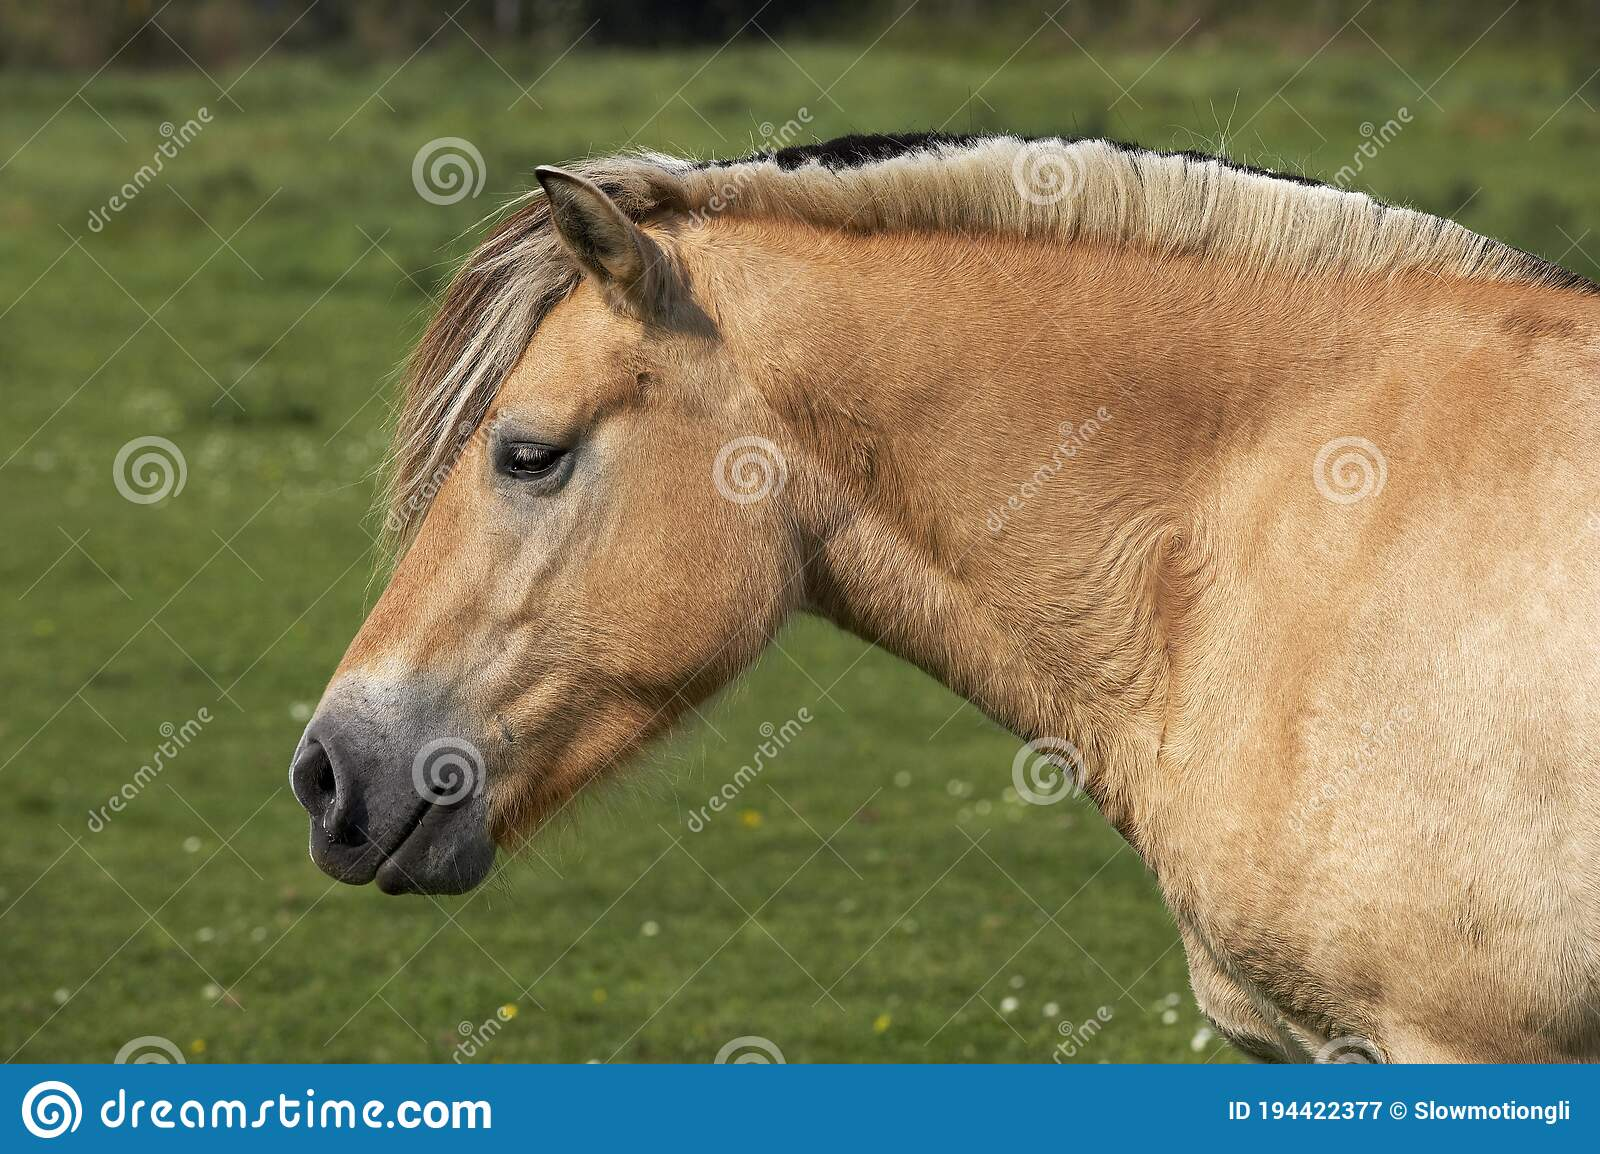 401 Norwegian Fjord Horse Photos Free Royalty Free Stock Photos From Dreamstime